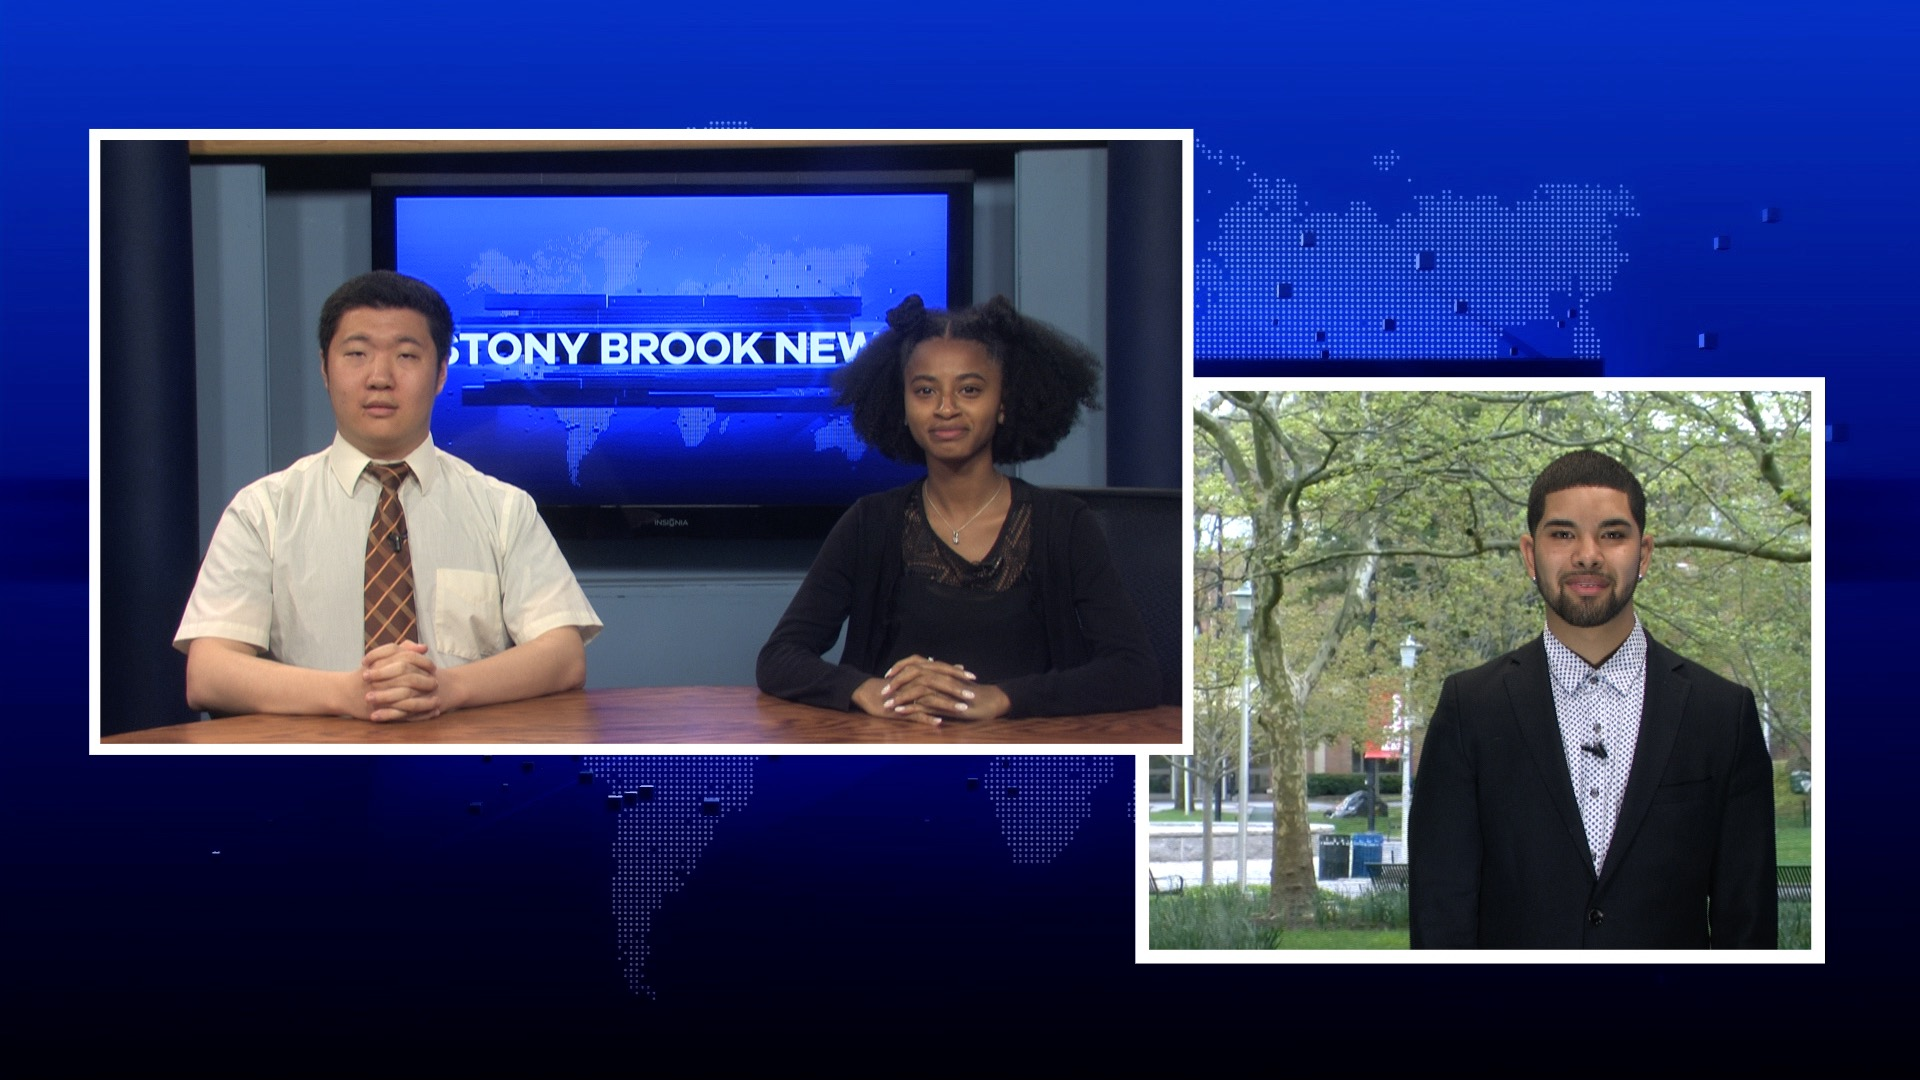 Stony Brook Nesbreak – April 30, 2019